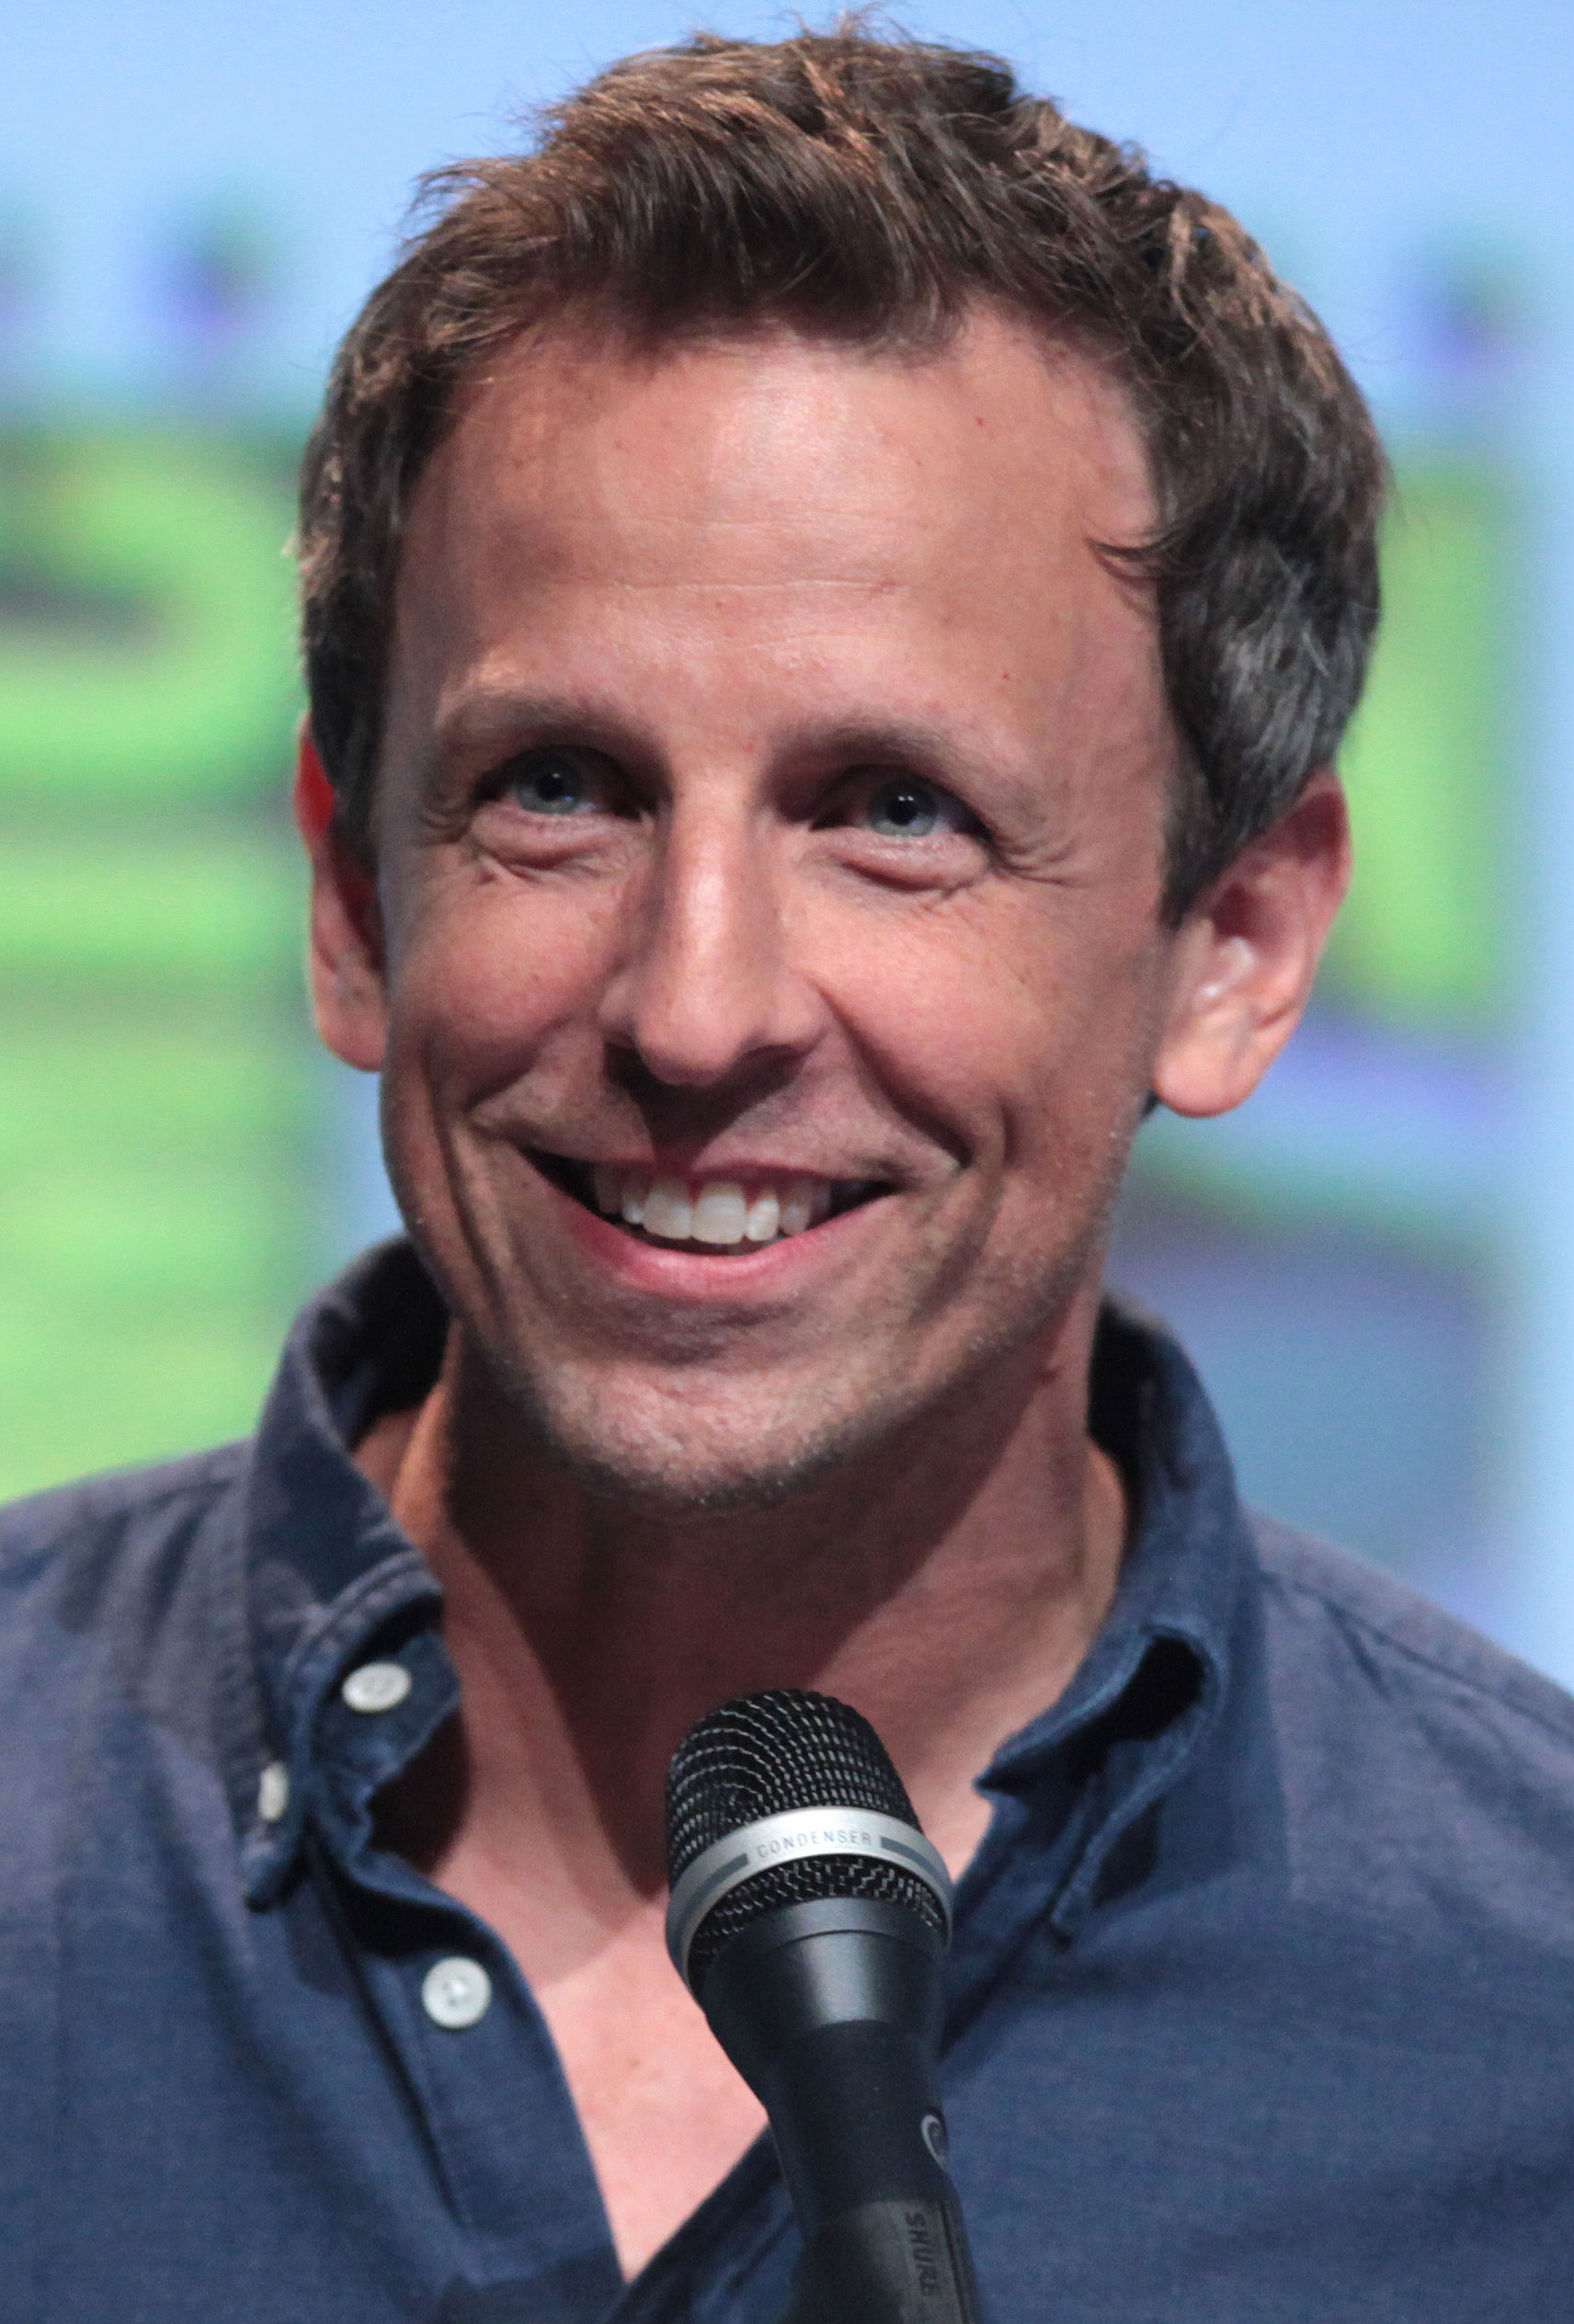 Photo of Seth Meyers: American comedian and actor